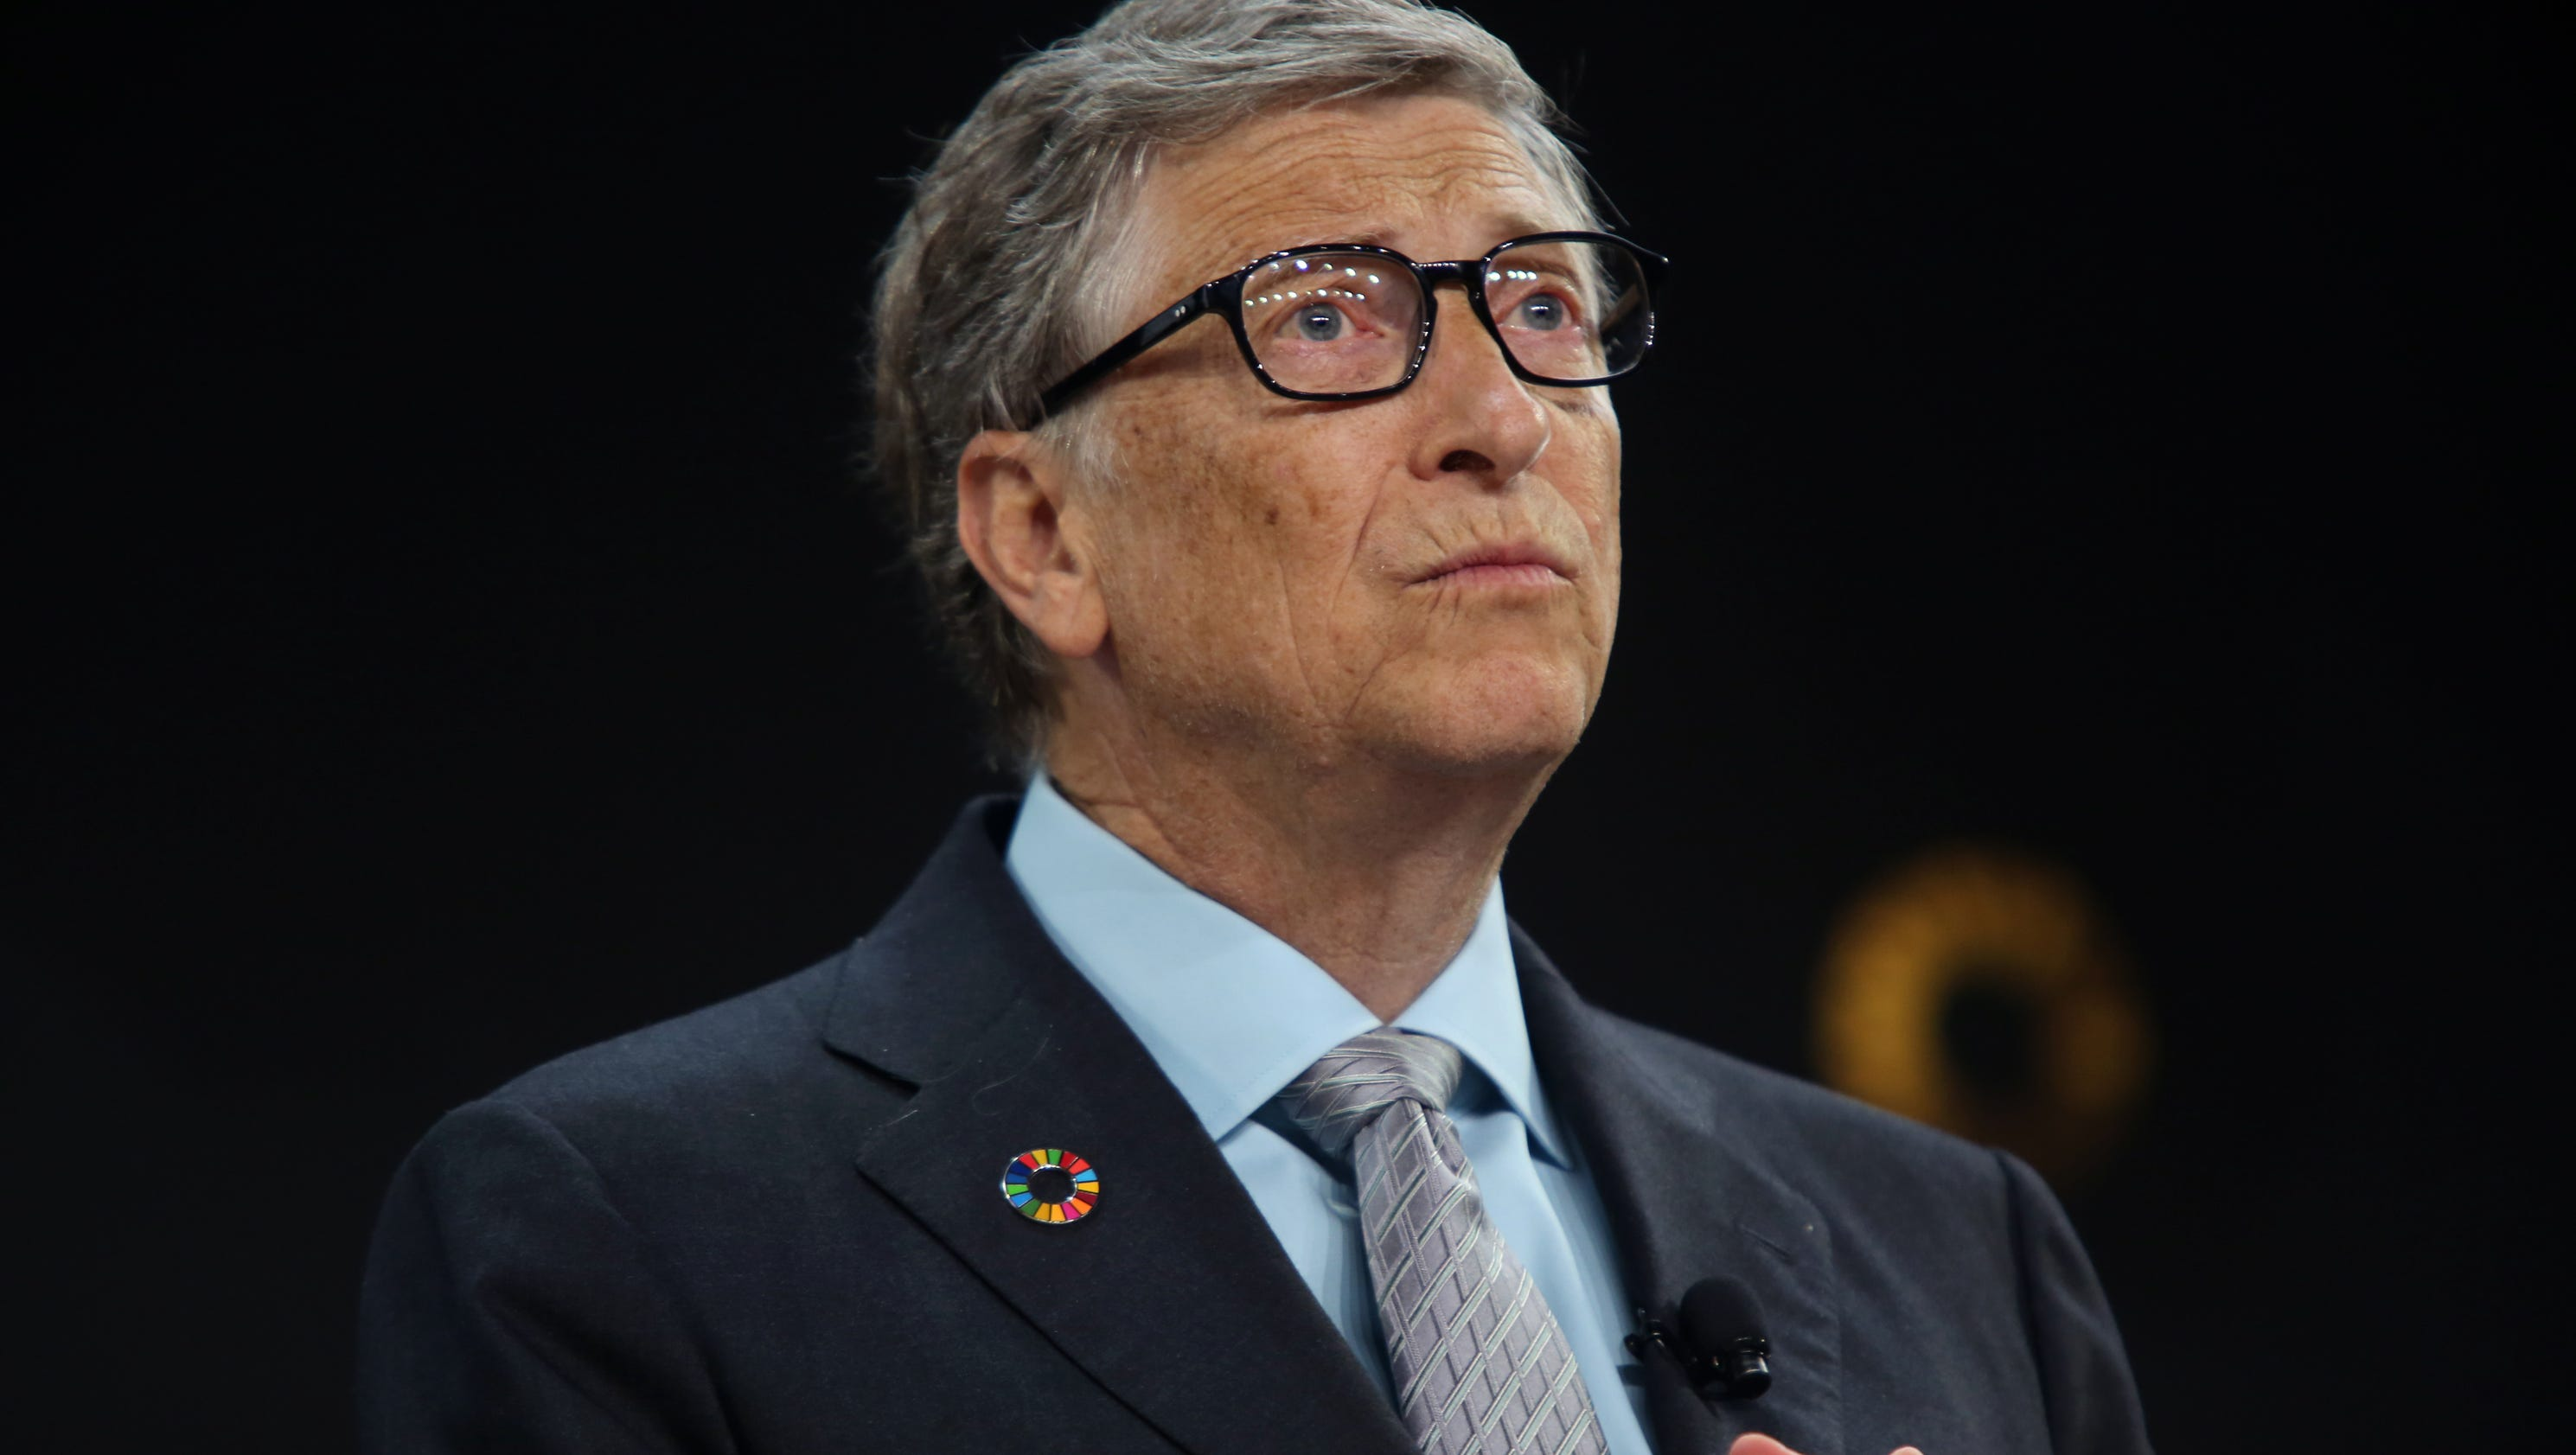 Bill Gates in the White House? Trump offered him a job as White House science advisor, he says